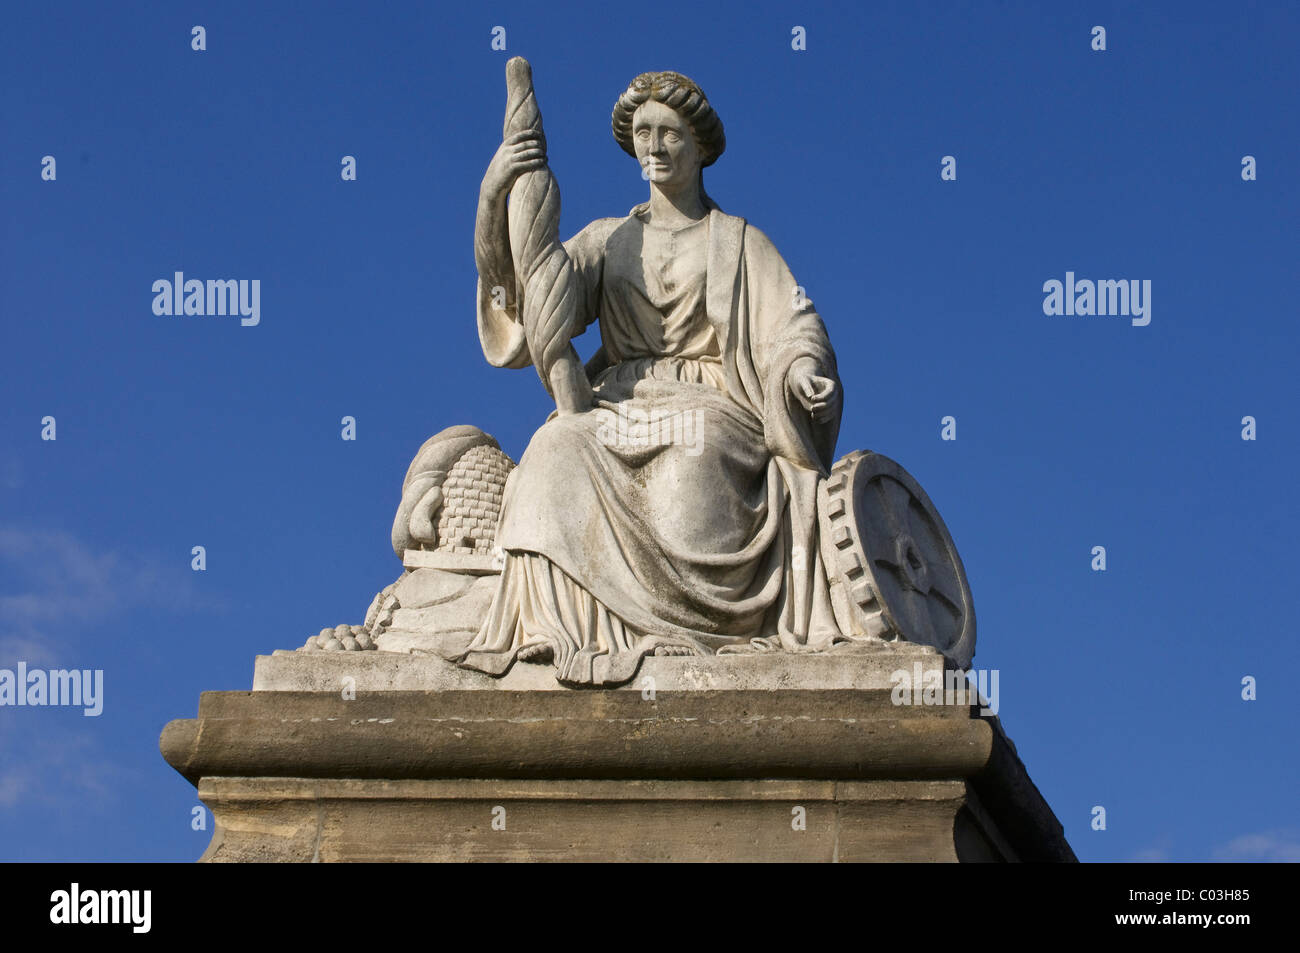 Statue for agriculture and industry, Castle Gate Mainz, Rhineland-Palatinate, Germany, Europe - Stock Image